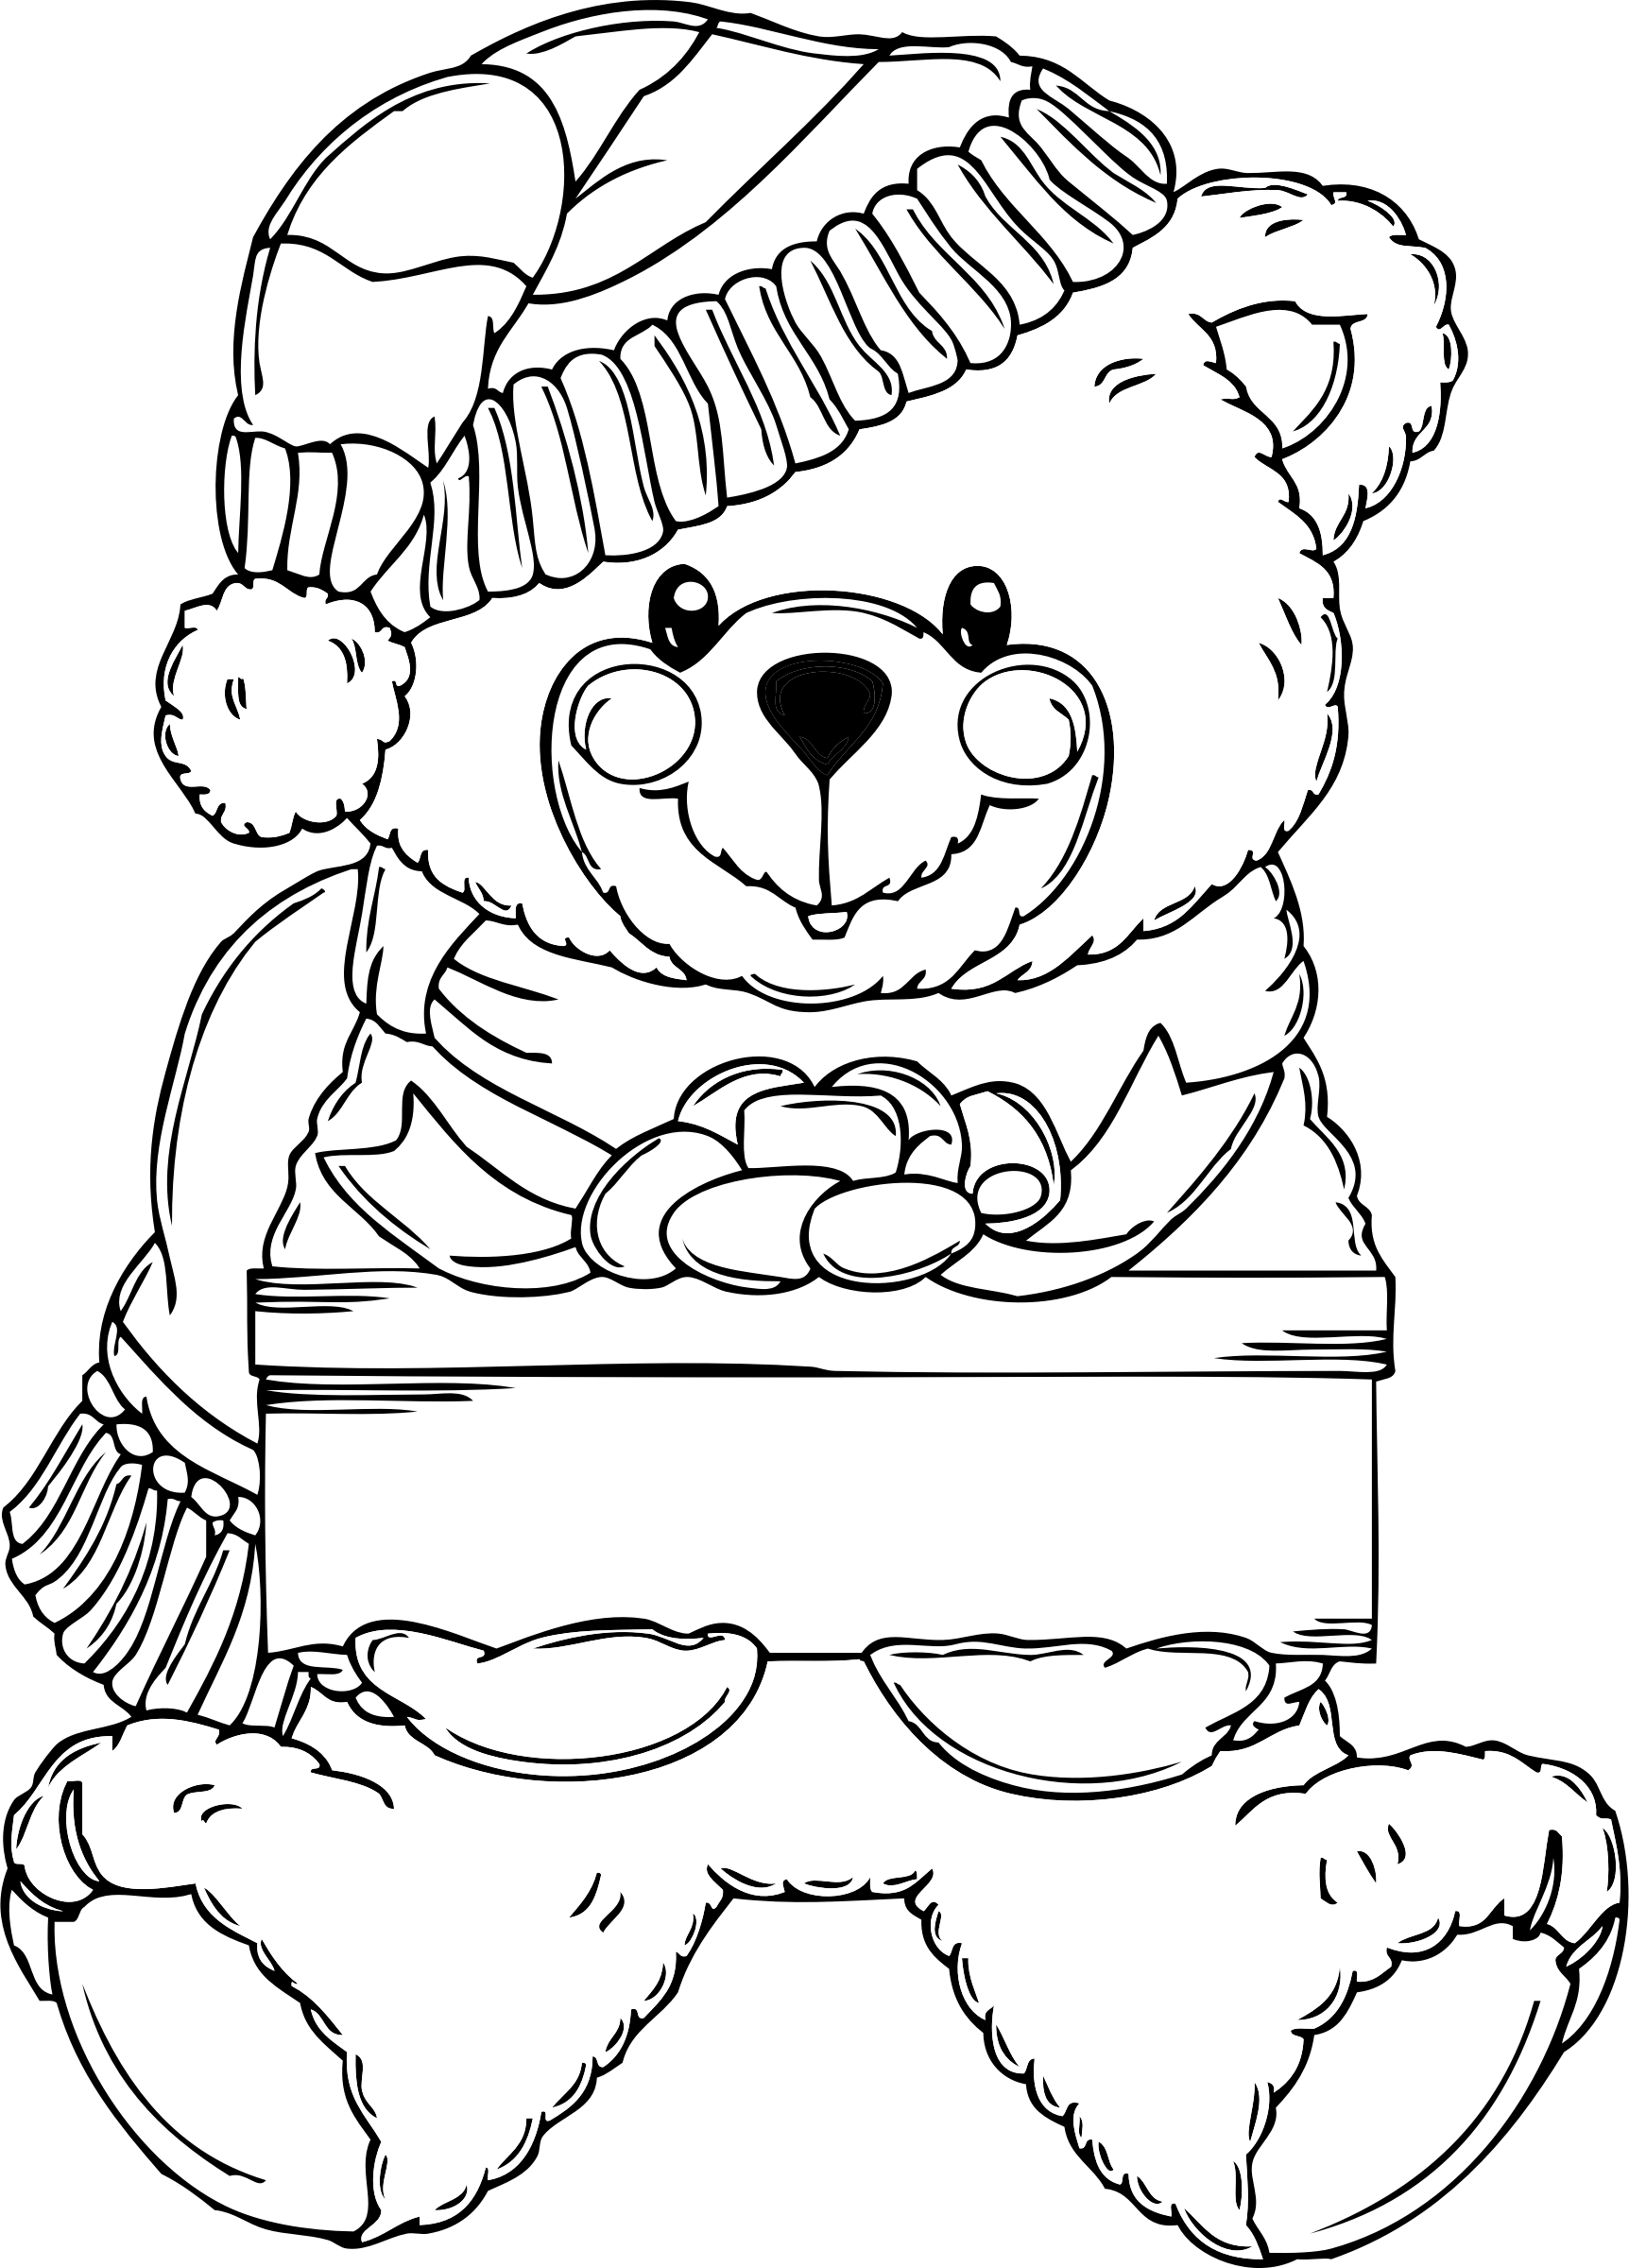 png free download Christmas coloring page big. Black bear clipart black and white